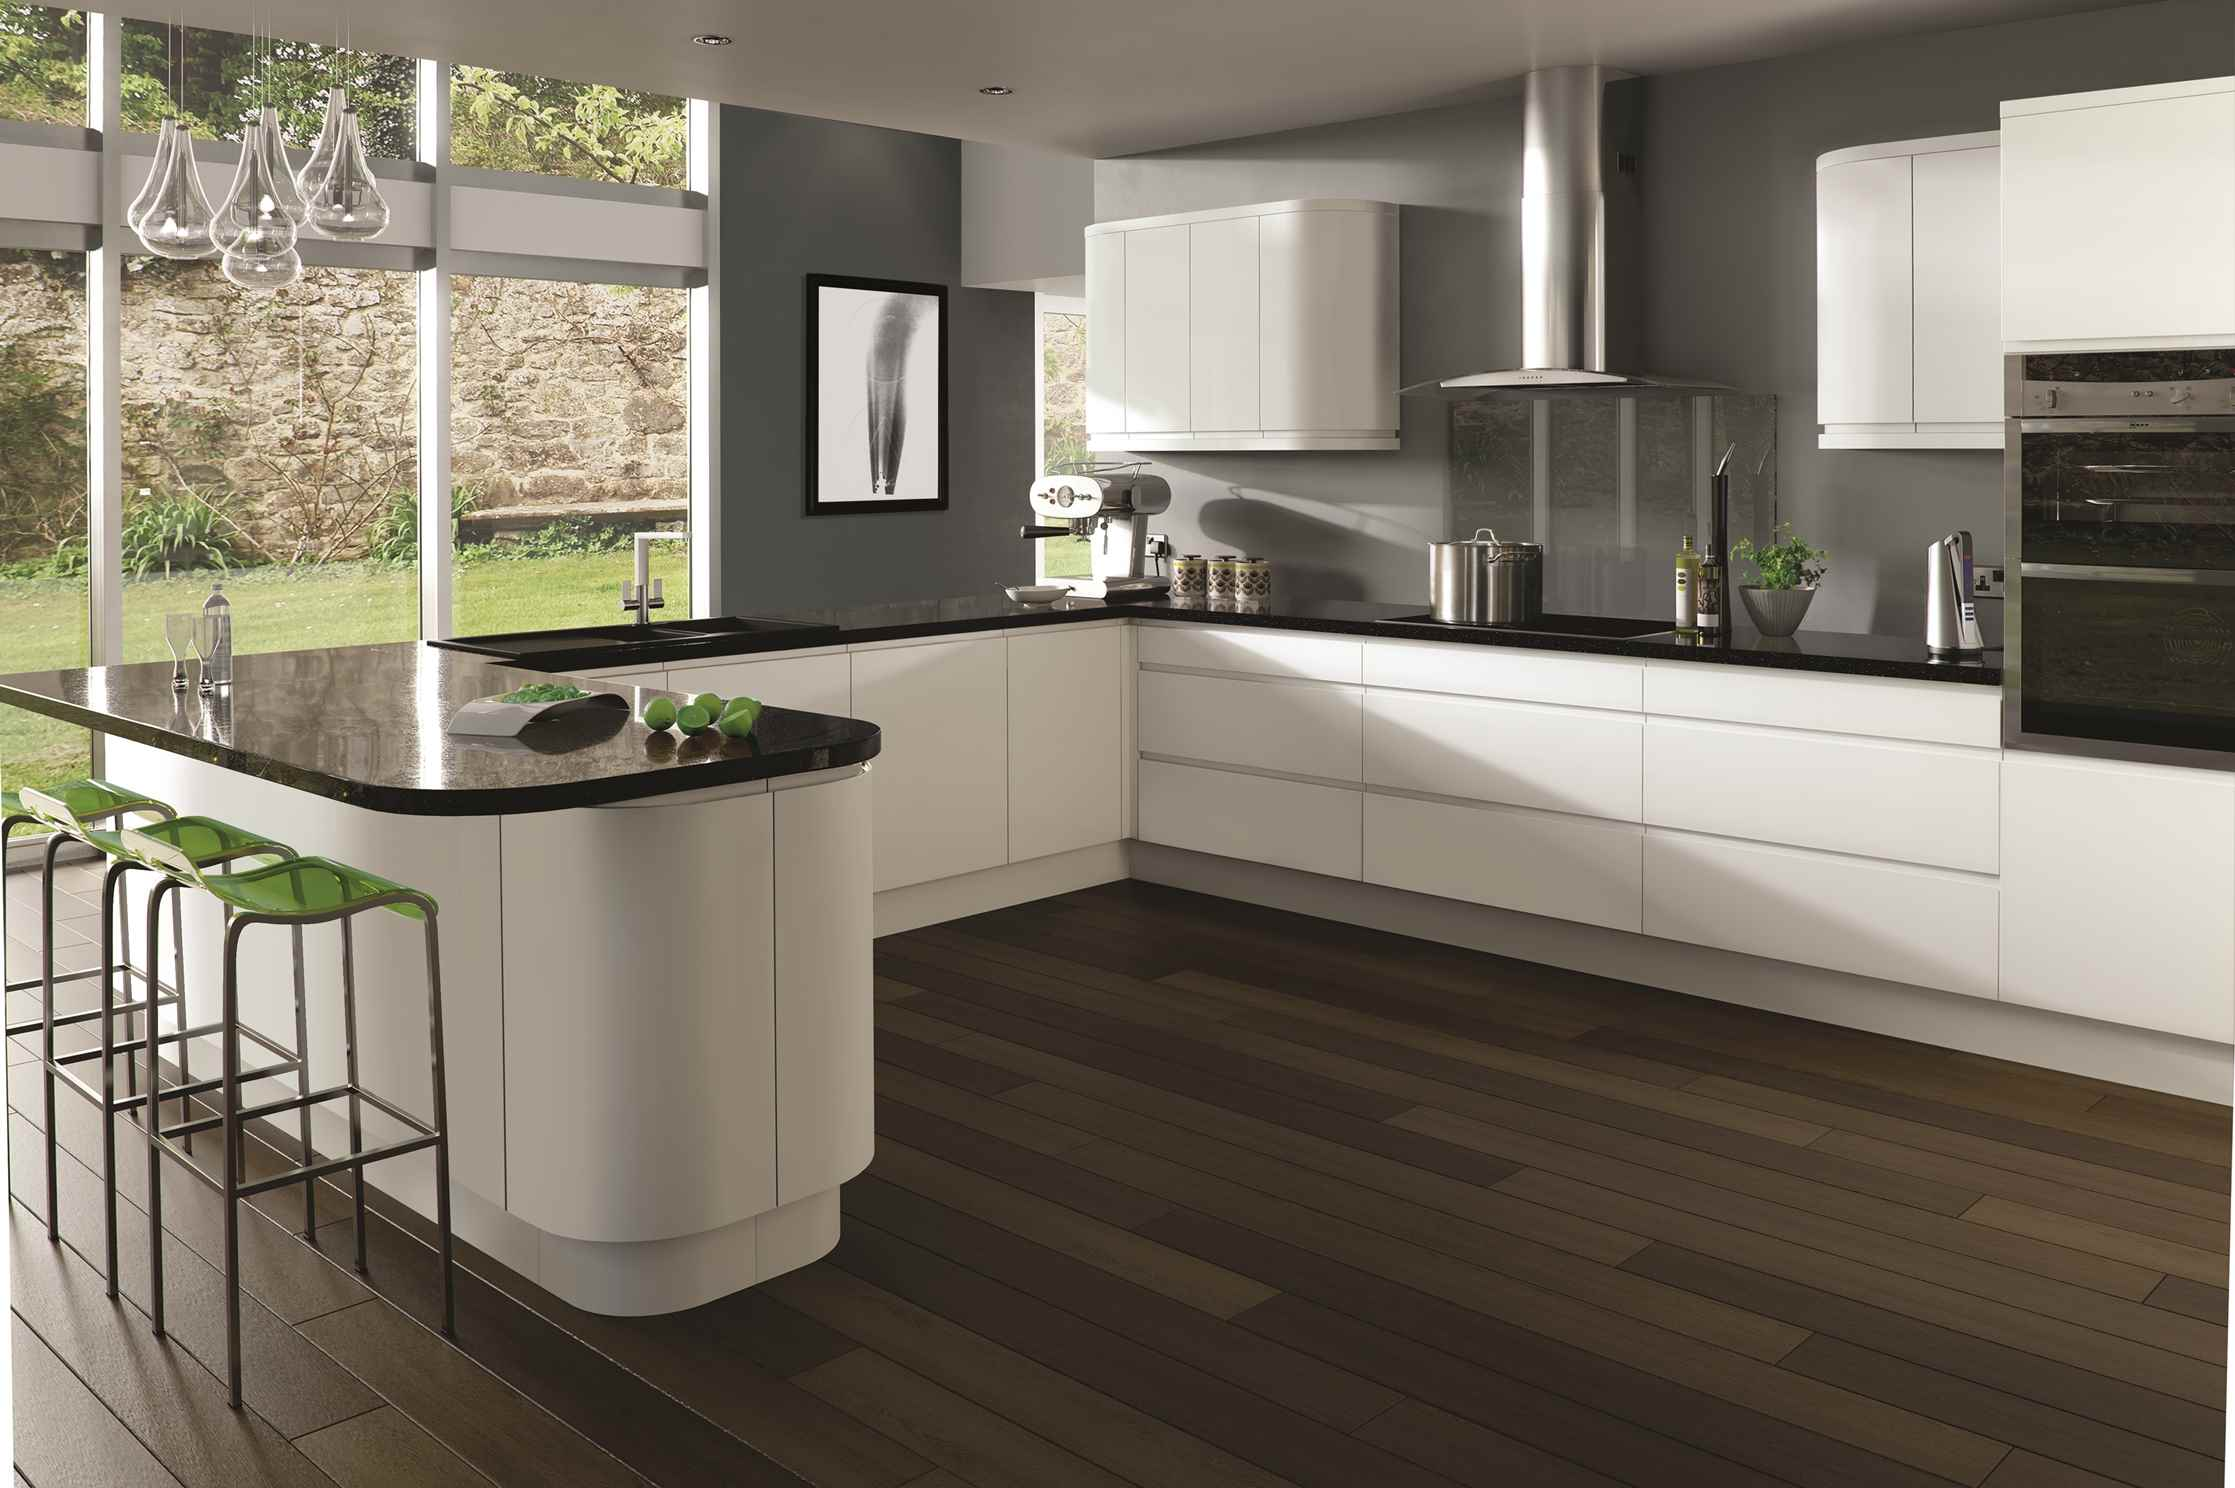 Jem Living Kitchens – JEM Living Kitchens and Bedrooms